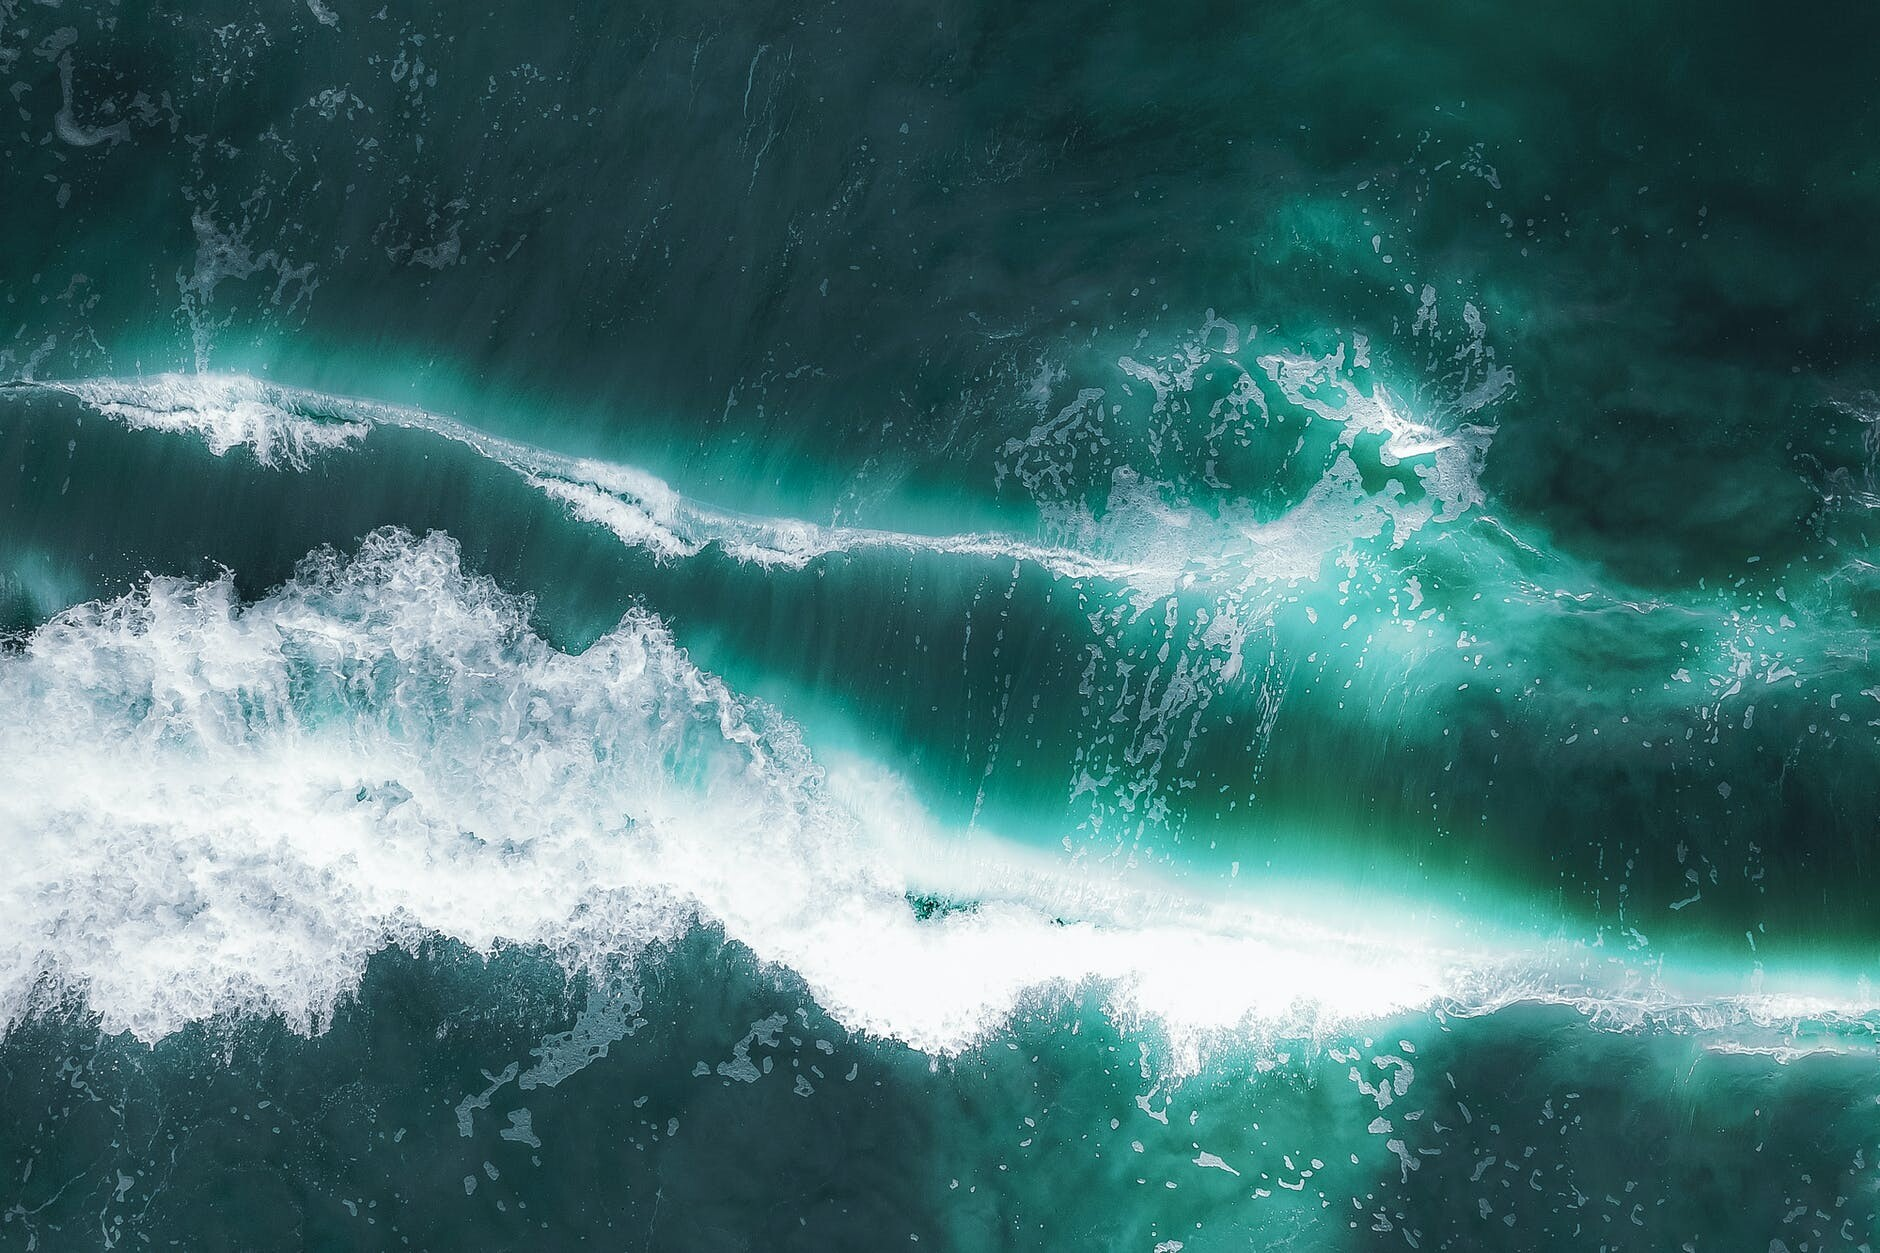 stormy sea with splashes and waves